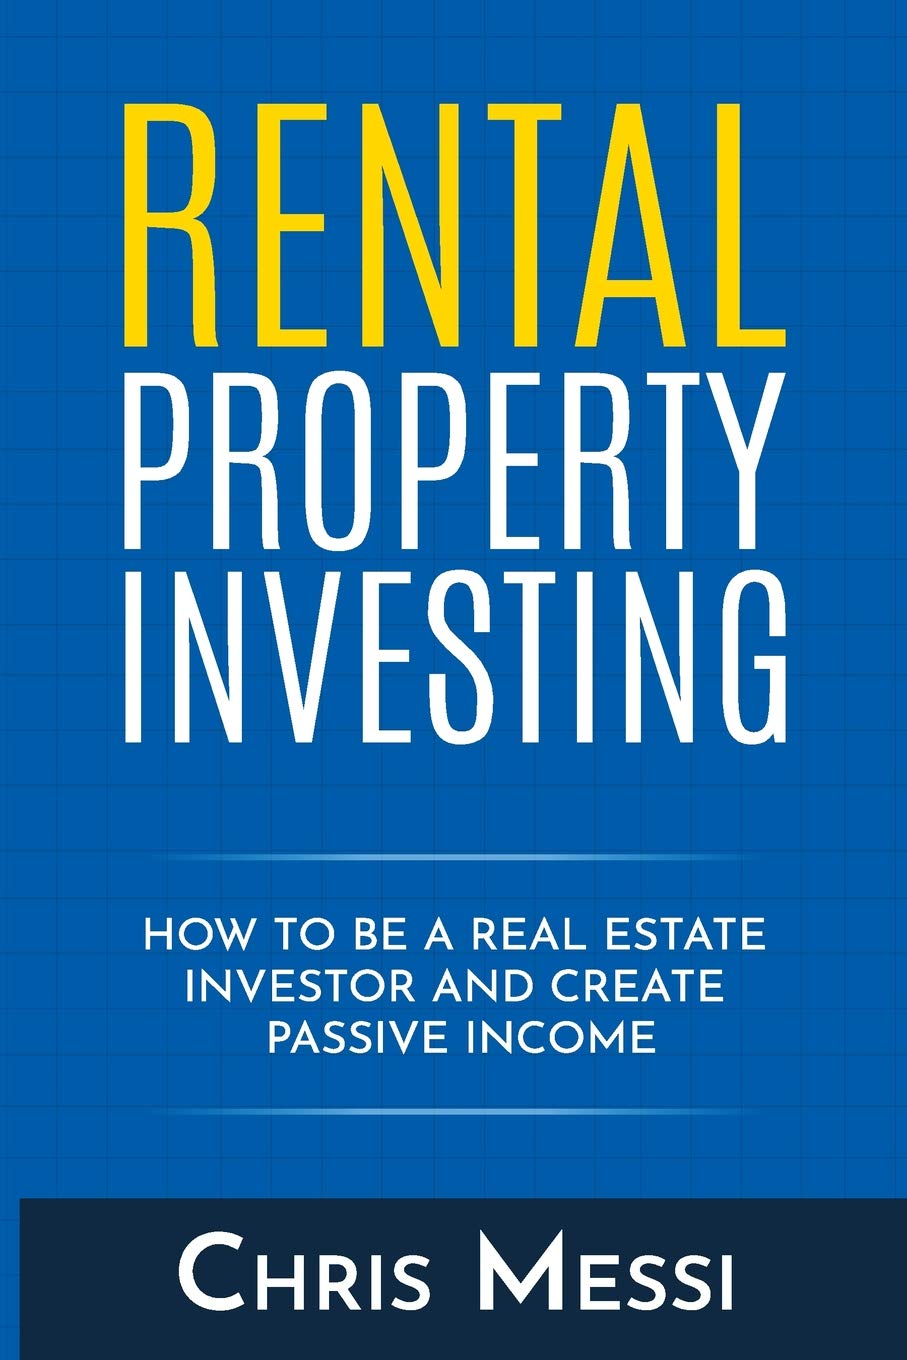 Rental Property Investing: How to Be a Real Estate Investor and Create -  Messi, Chris - Amazon.de: Bücher